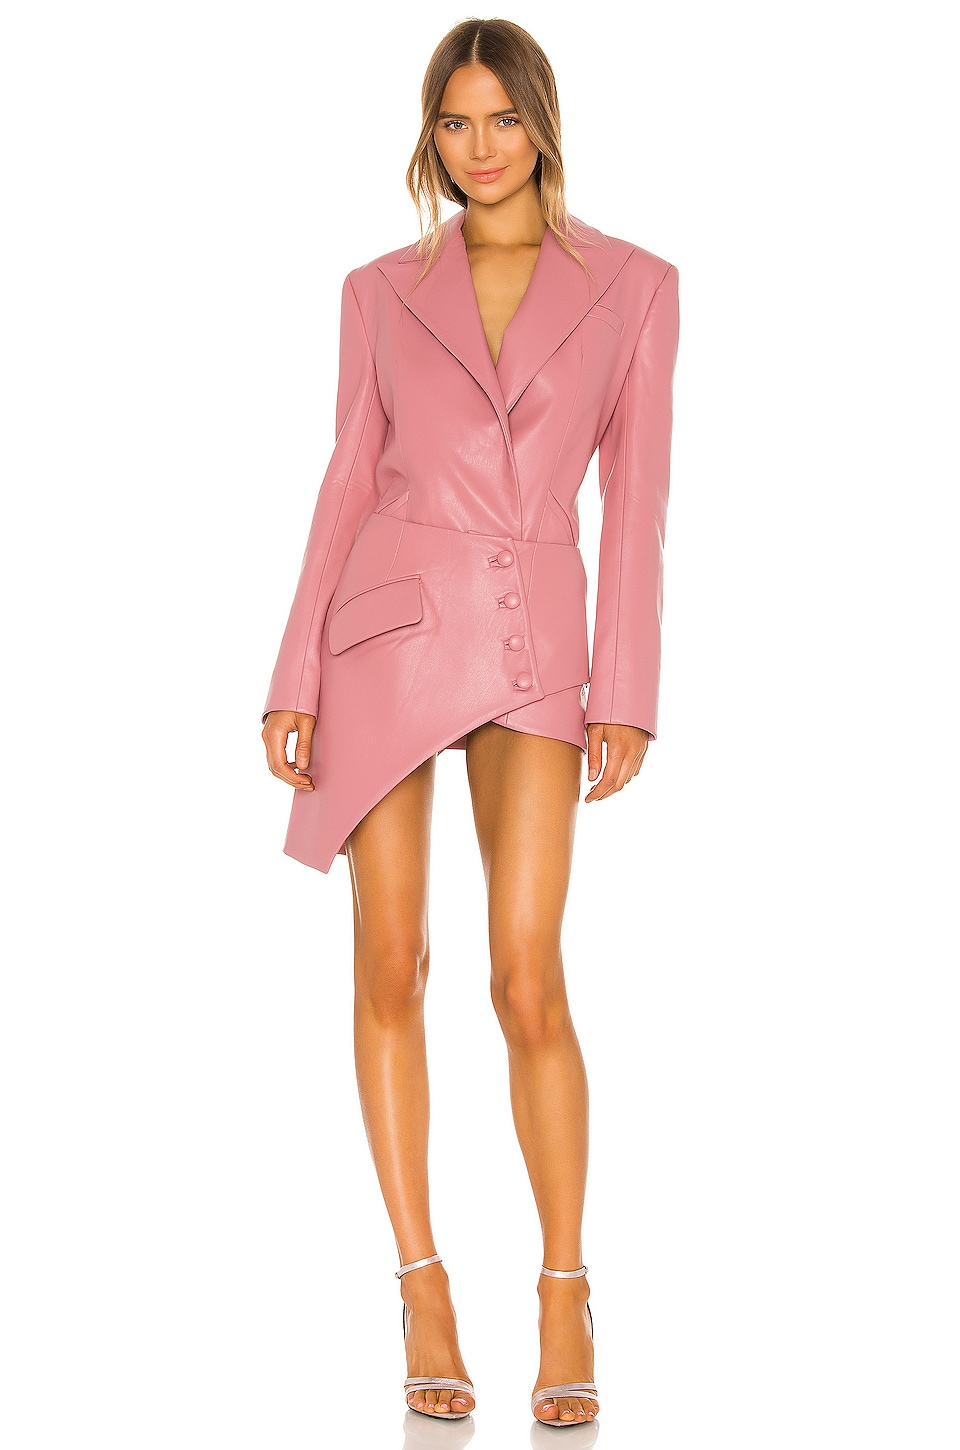 MATERIEL Faux Leather Corset Detail Blazer Dress in Pink